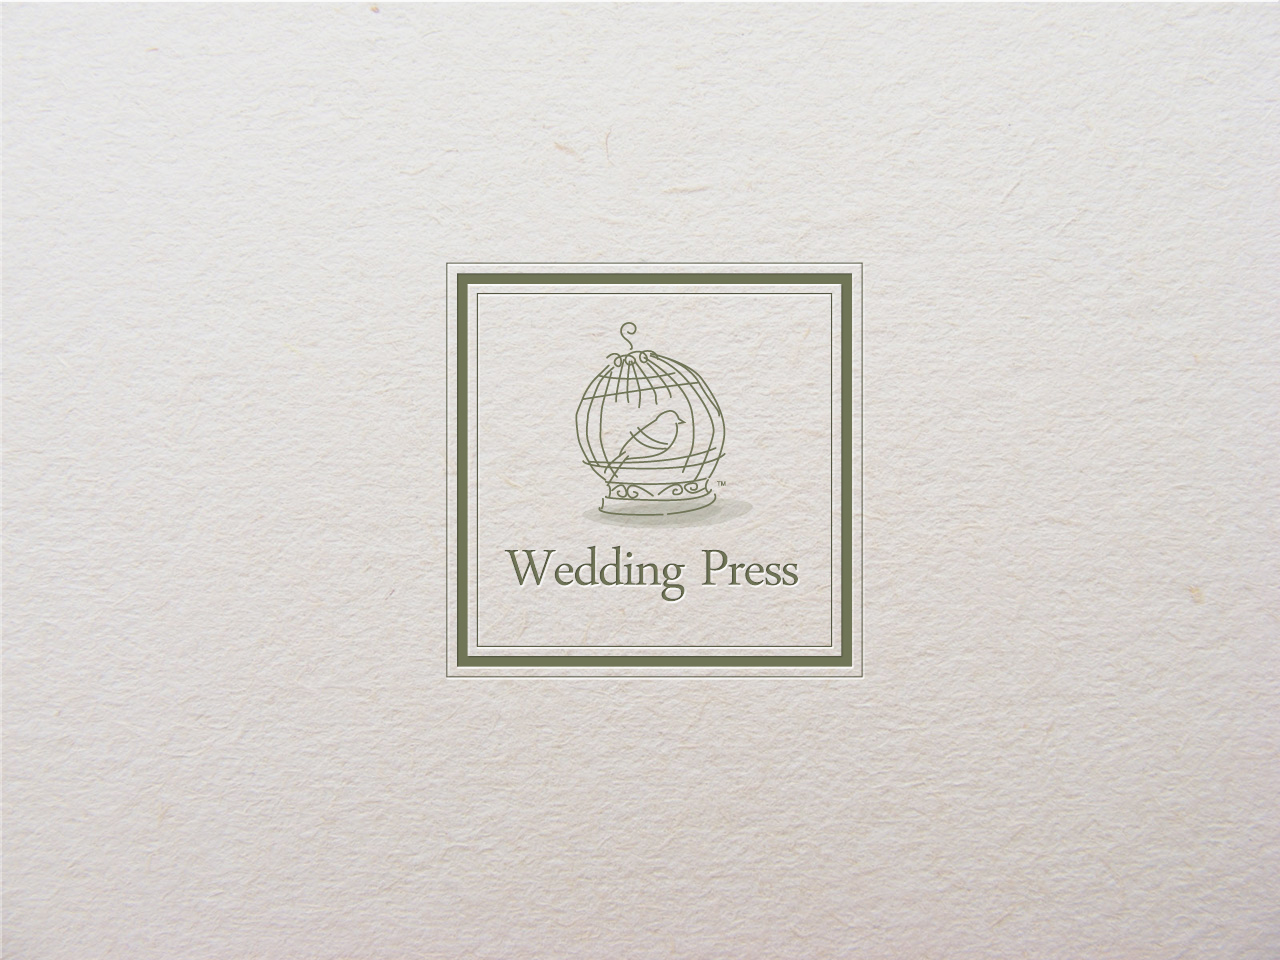 Logo Design by jpbituin - Entry No. 41 in the Logo Design Contest Wedding Writes Logo Design.